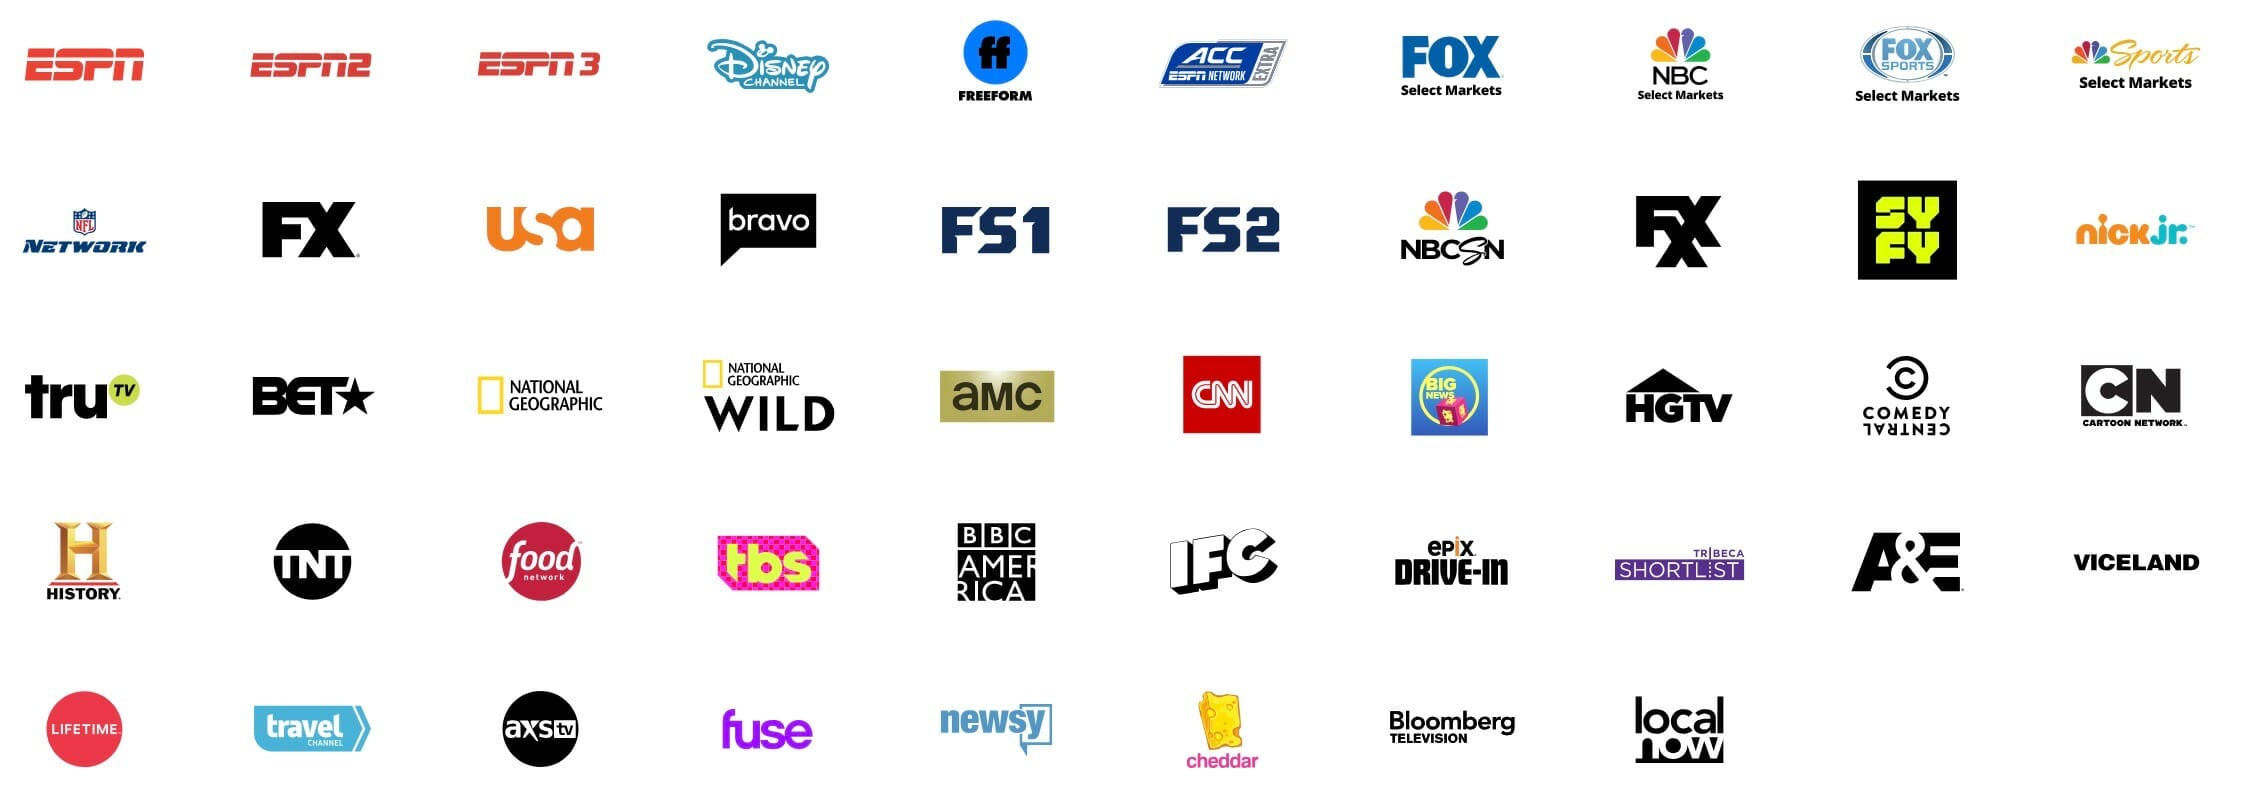 cord-cutting guide for families with Sling TV